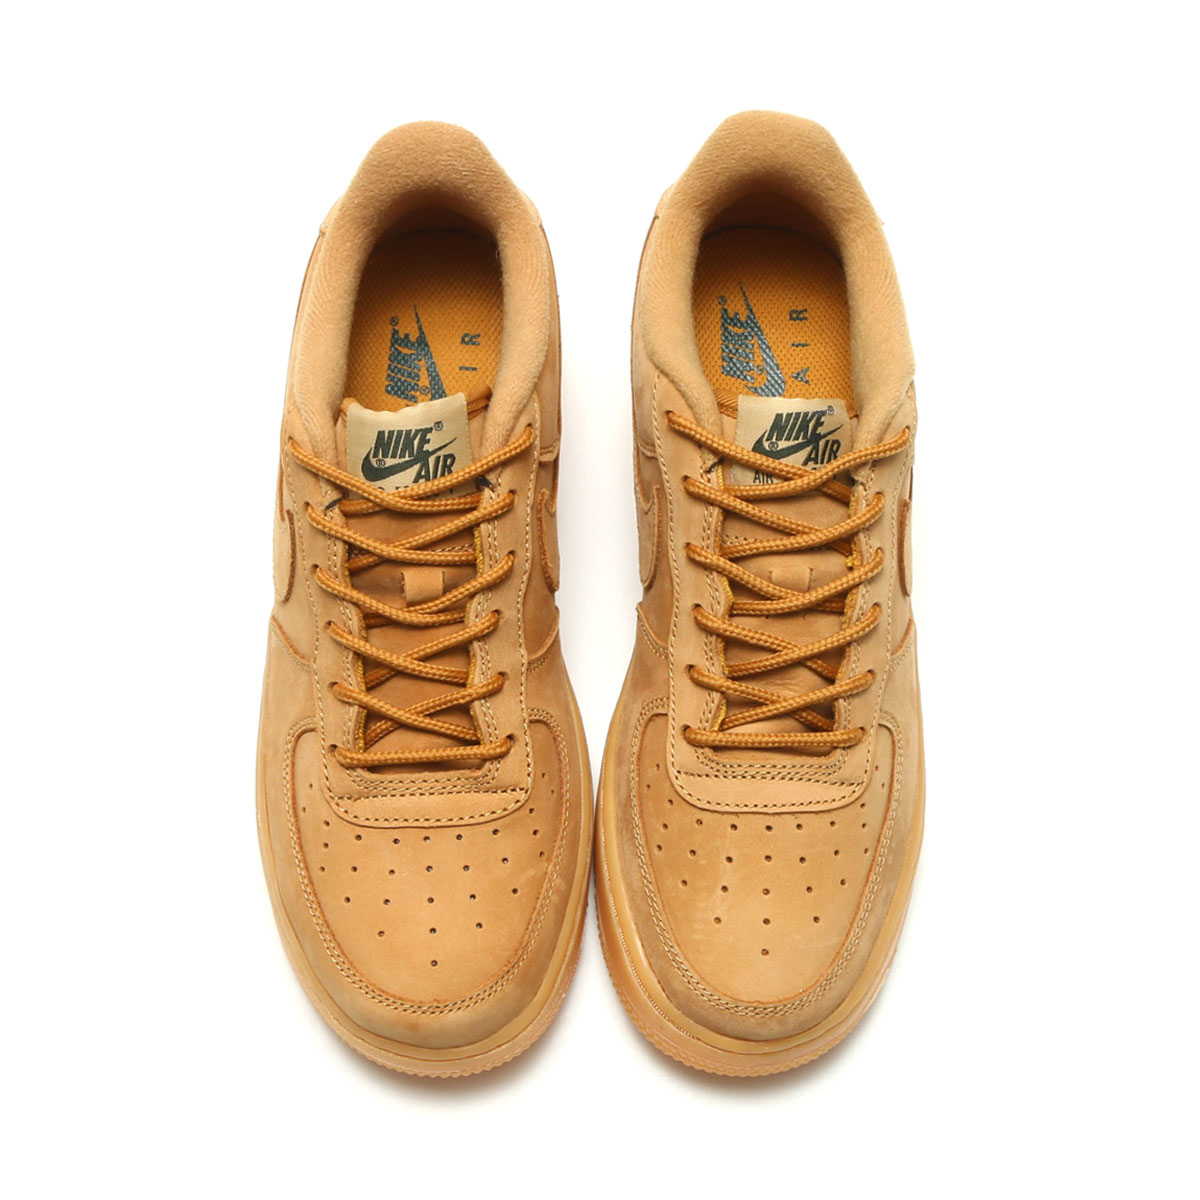 new concept 6c8c5 00328 NIKE AIR FORCE 1 WINTER PRM GS (GS premium for Nike air force 1 winter) ( FLAX FLAX-OUTDOOR GREEN-GUM YELLOW) 17HO-S